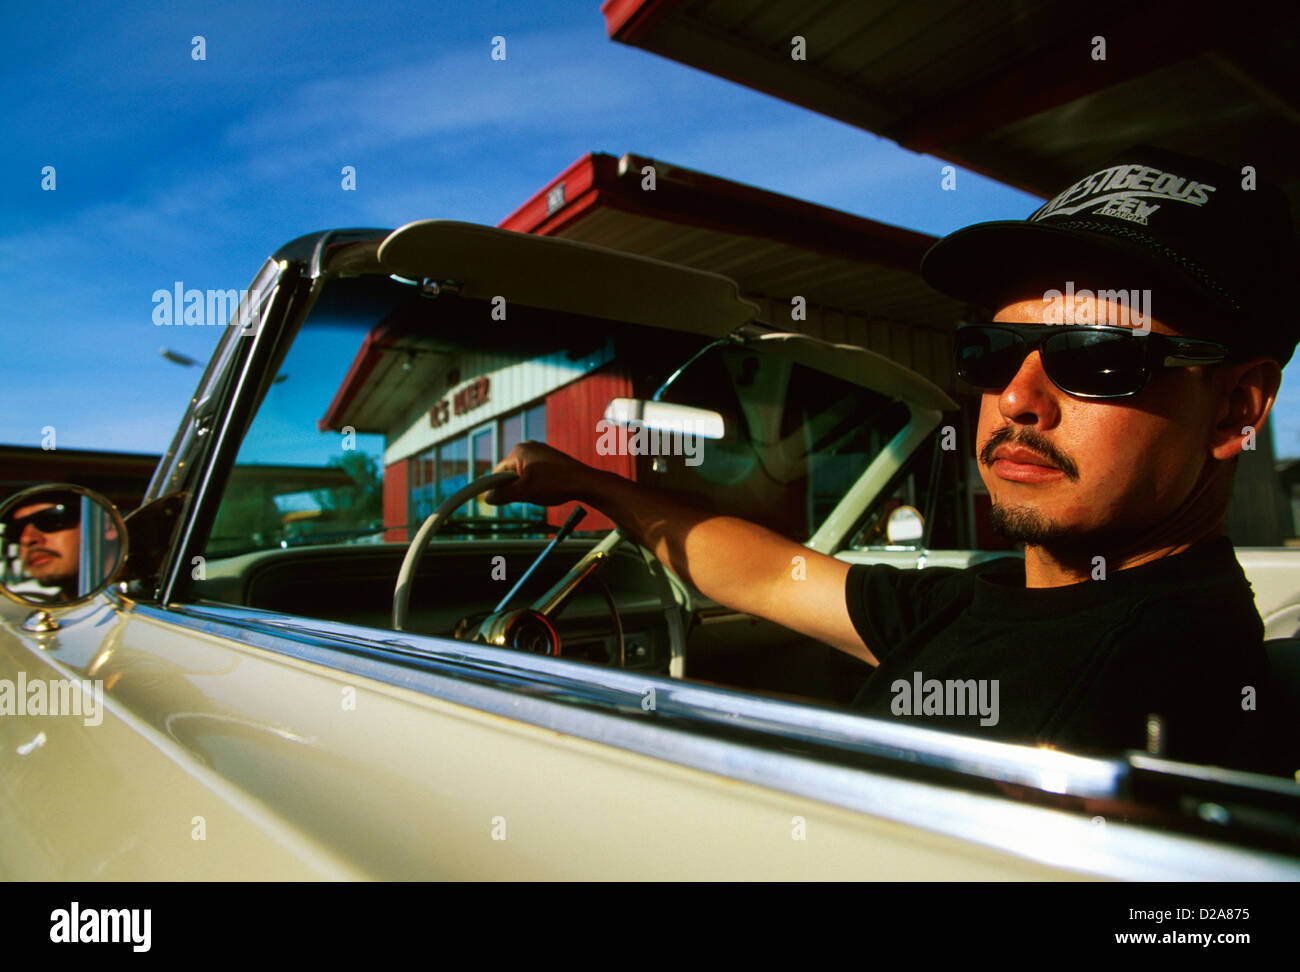 New Mexico, Espanola, Man W/ Moustache And Goatee, In Driver'S Seat Of 1964 Chevrolet Impala. Restricted Use - Stock Image